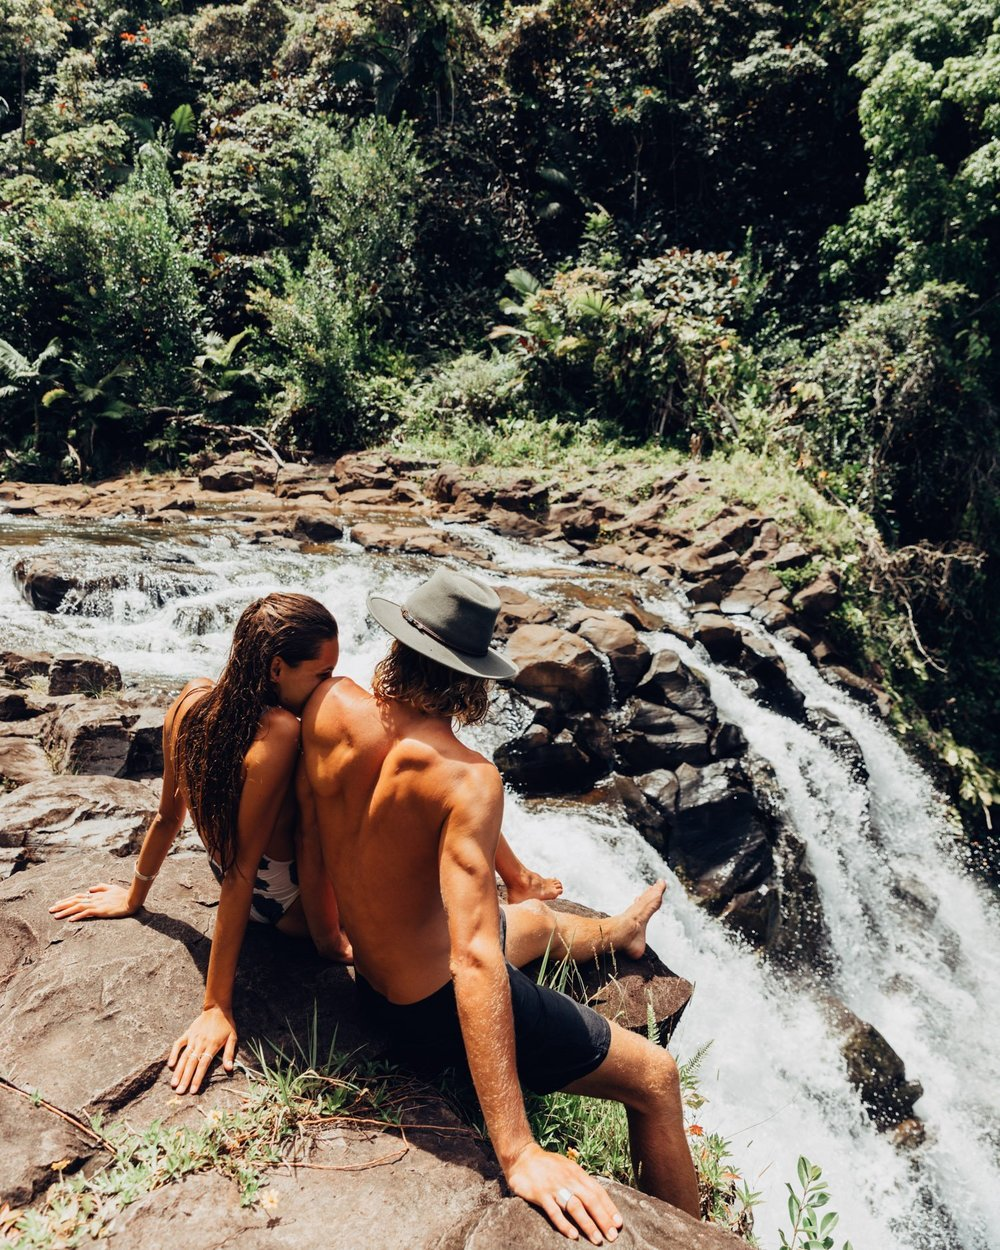 Tahnee Pinches and Morgan McDougall Cosmos Companions at a waterfall on the Big Island in Hawaii.